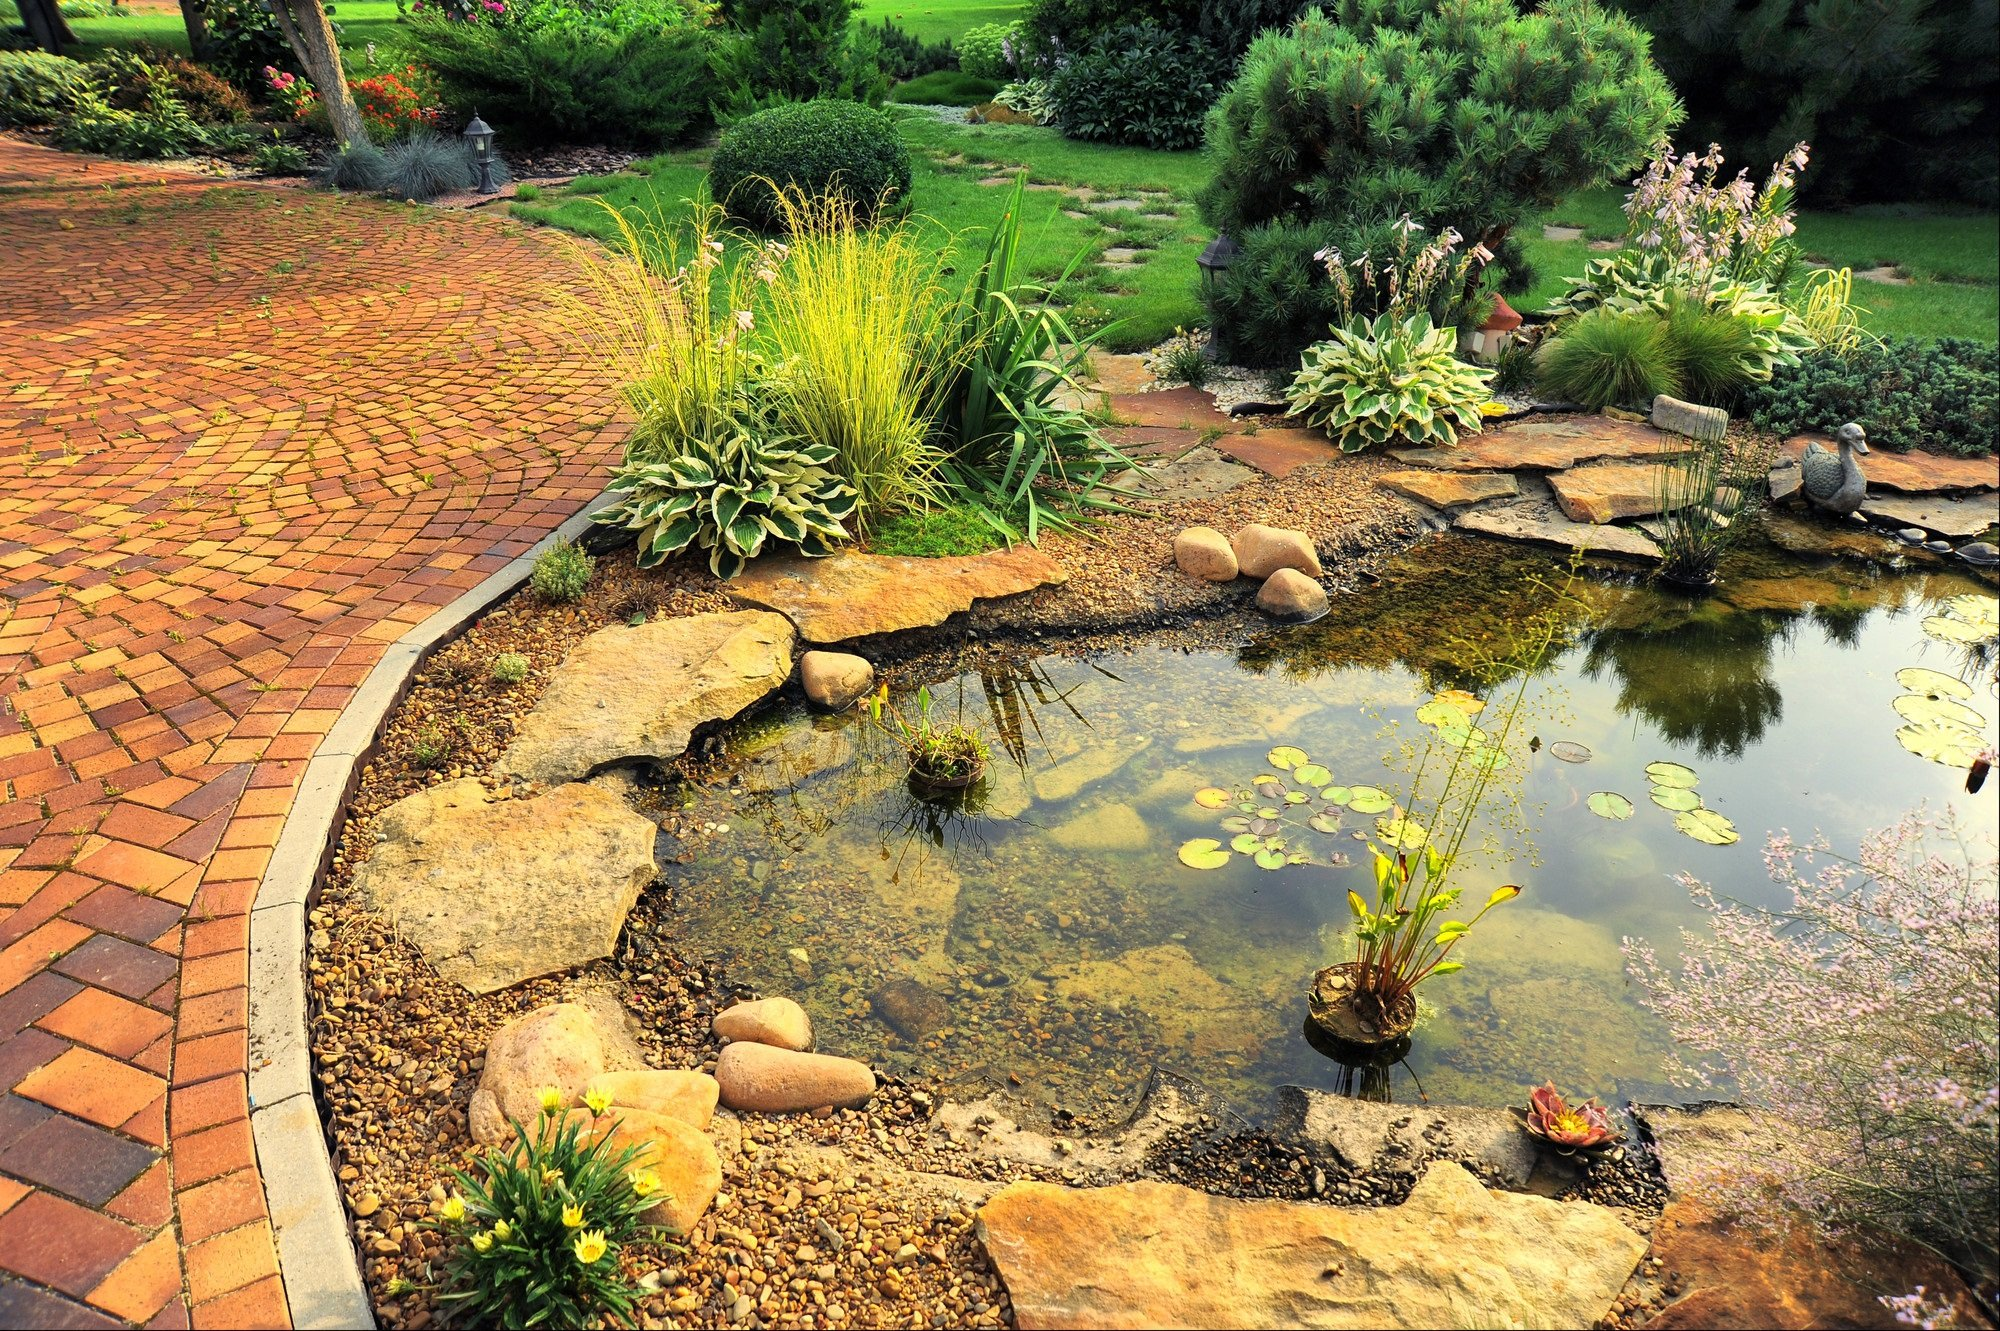 Terracotta paving around a garden pond